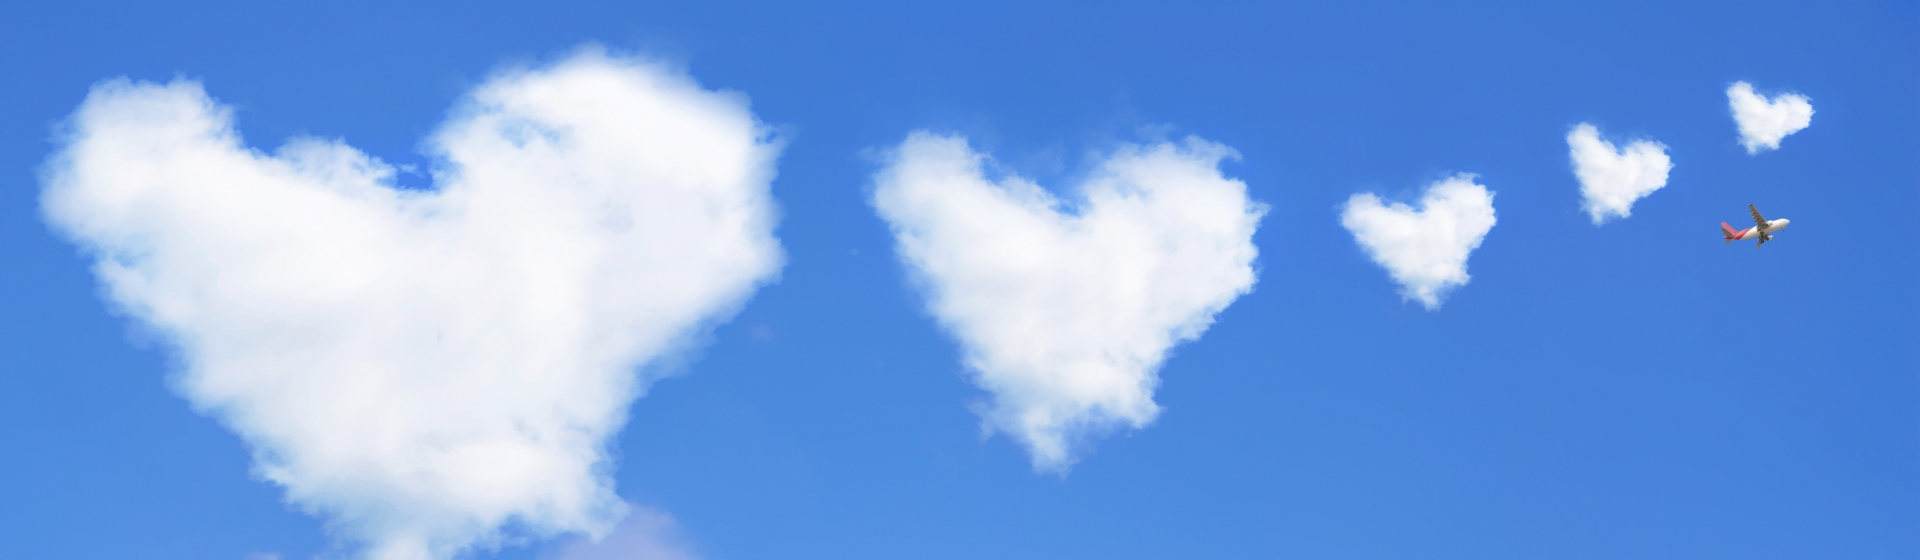 Airplane amidst heart shaped clouds